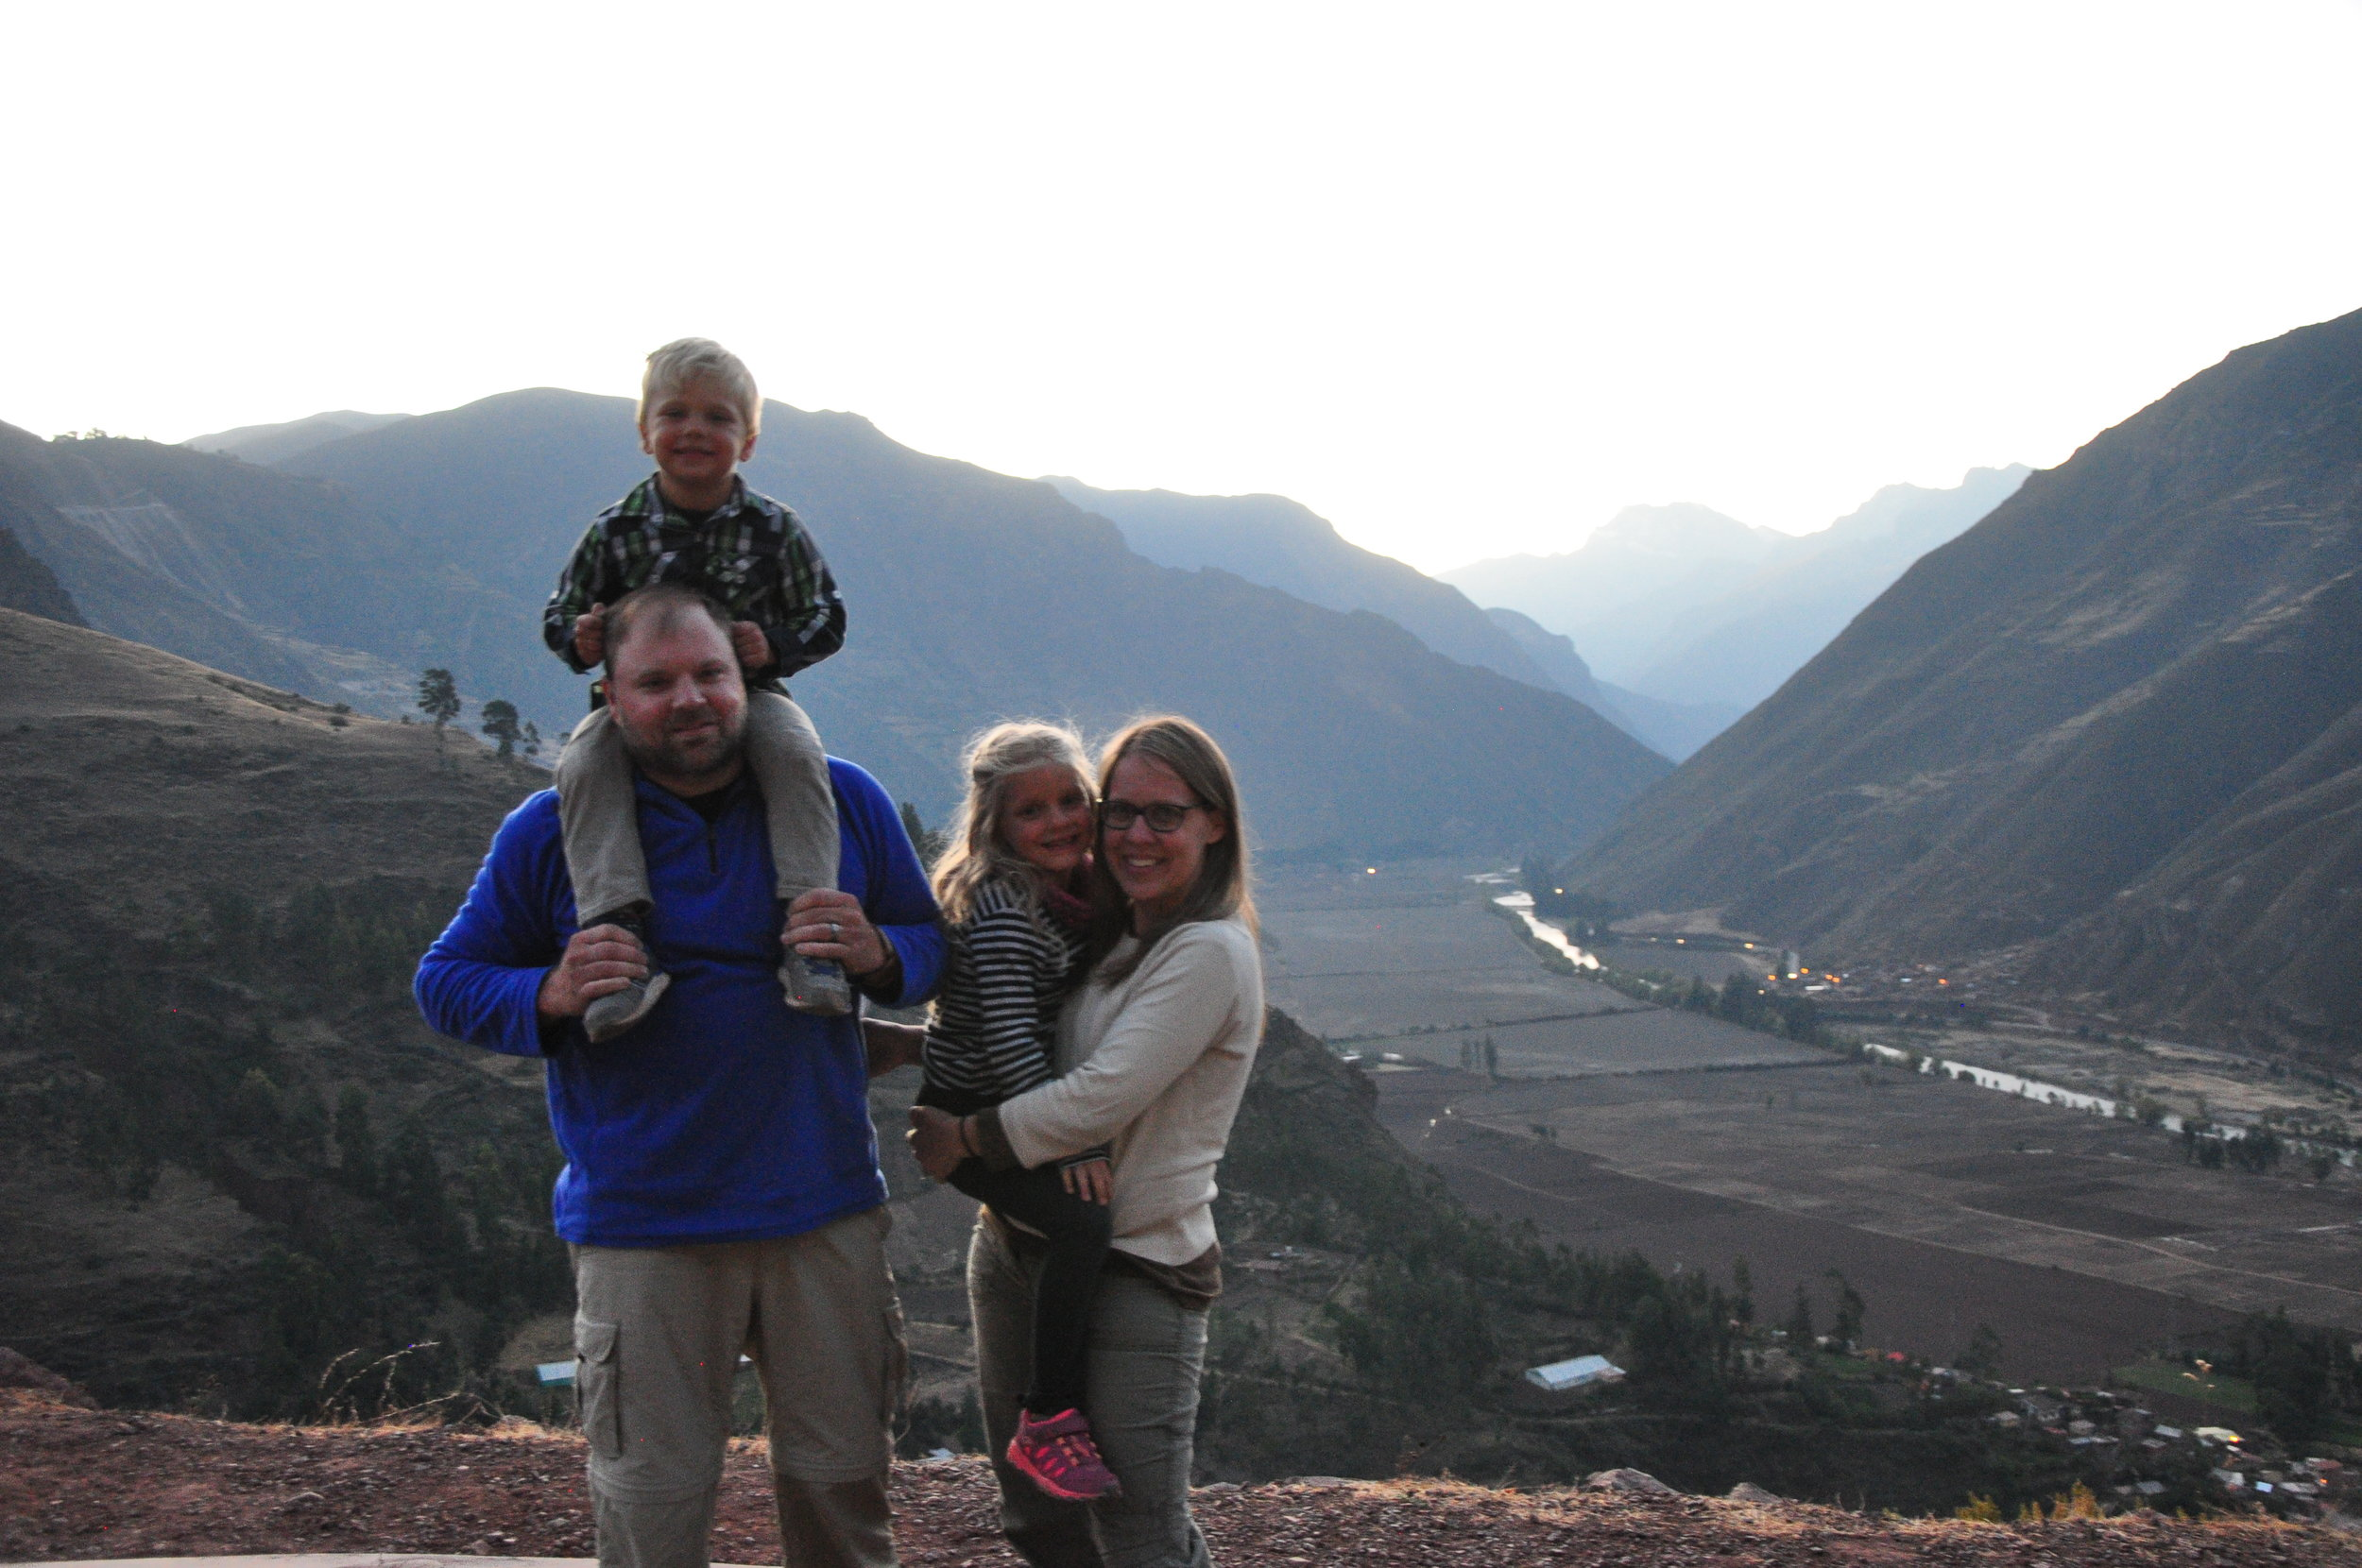 Overlooking Sacred Valley on our drive to Pisaq